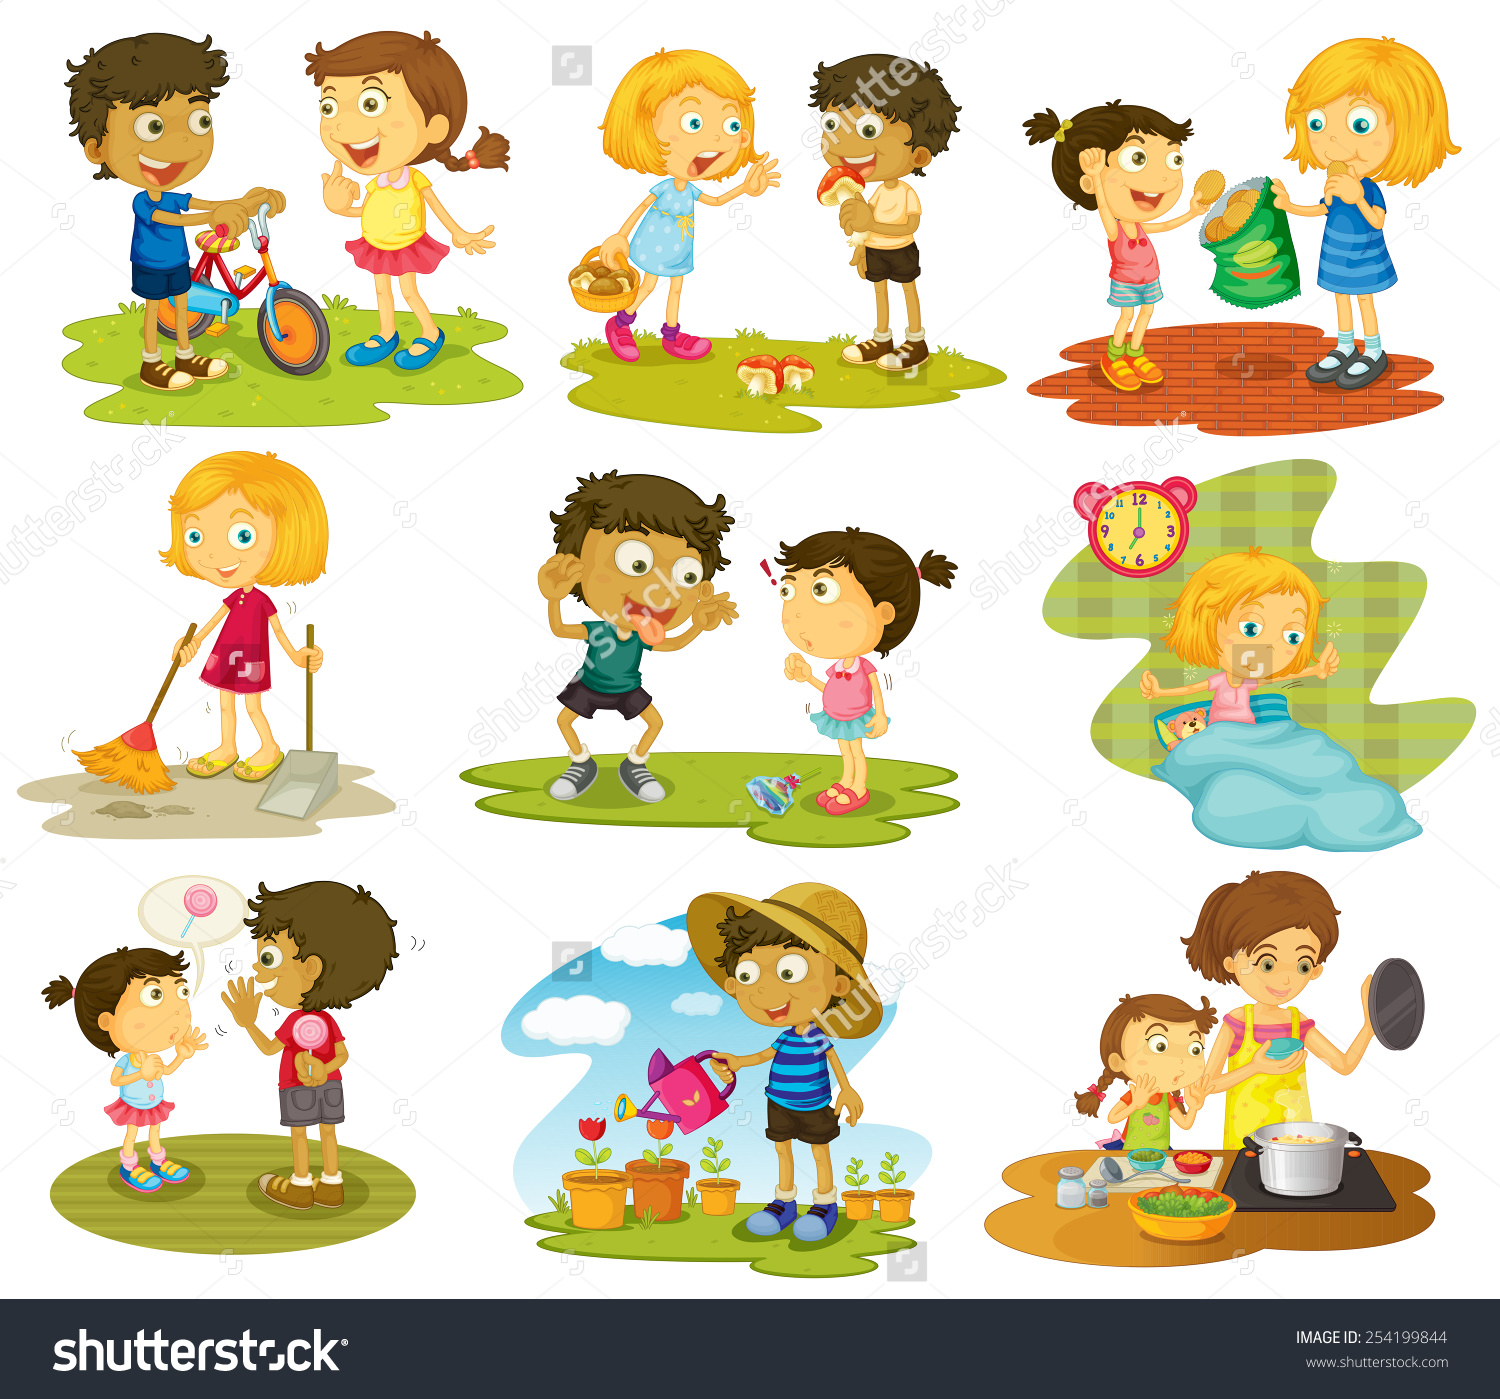 Free outdoor activities cliparts. Chores clipart household activity